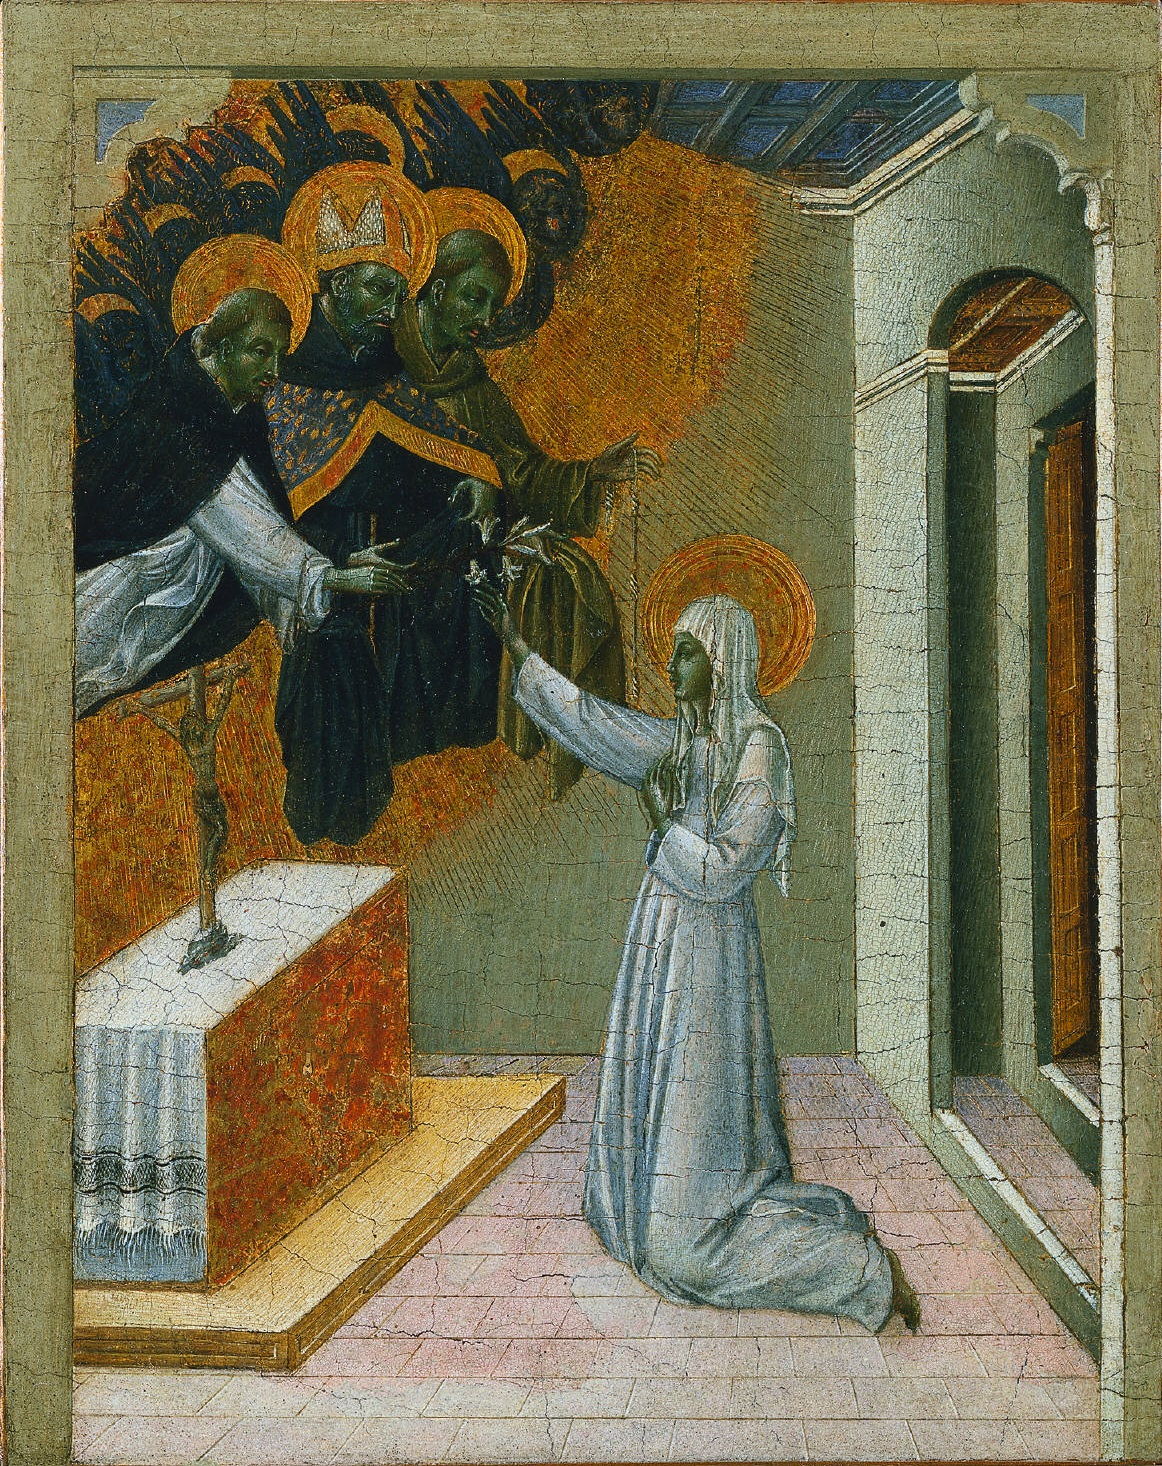 https://upload.wikimedia.org/wikipedia/commons/8/8e/Giovanni_di_Paolo_-_Santa_Caterina_da_Siena_investita_con_l'abito_domenicano.jpg